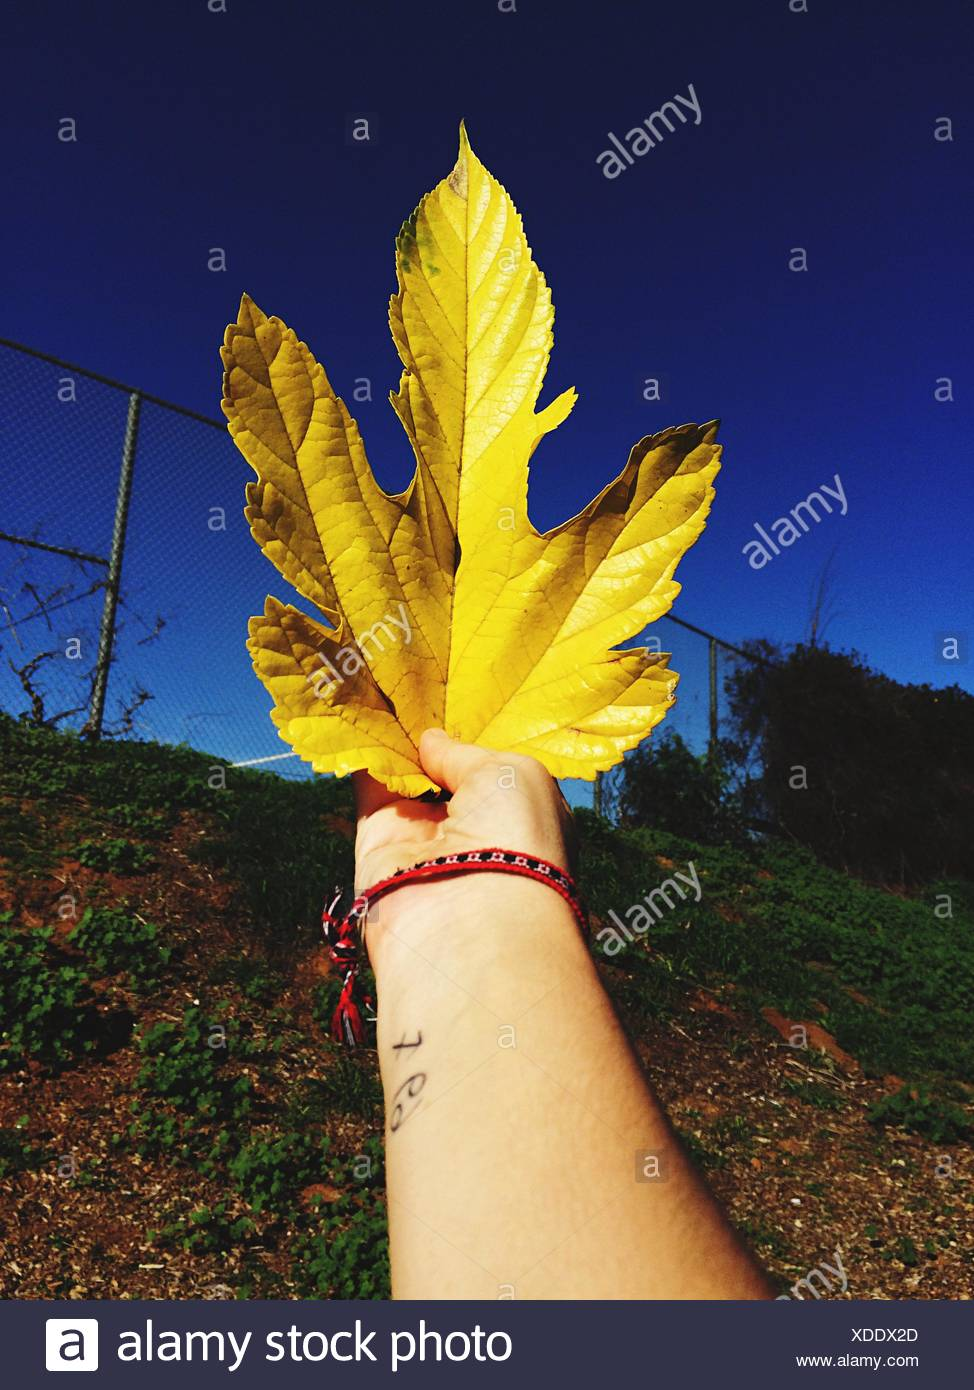 Woman Holding Yellow Leaf In Hand - Stock Image